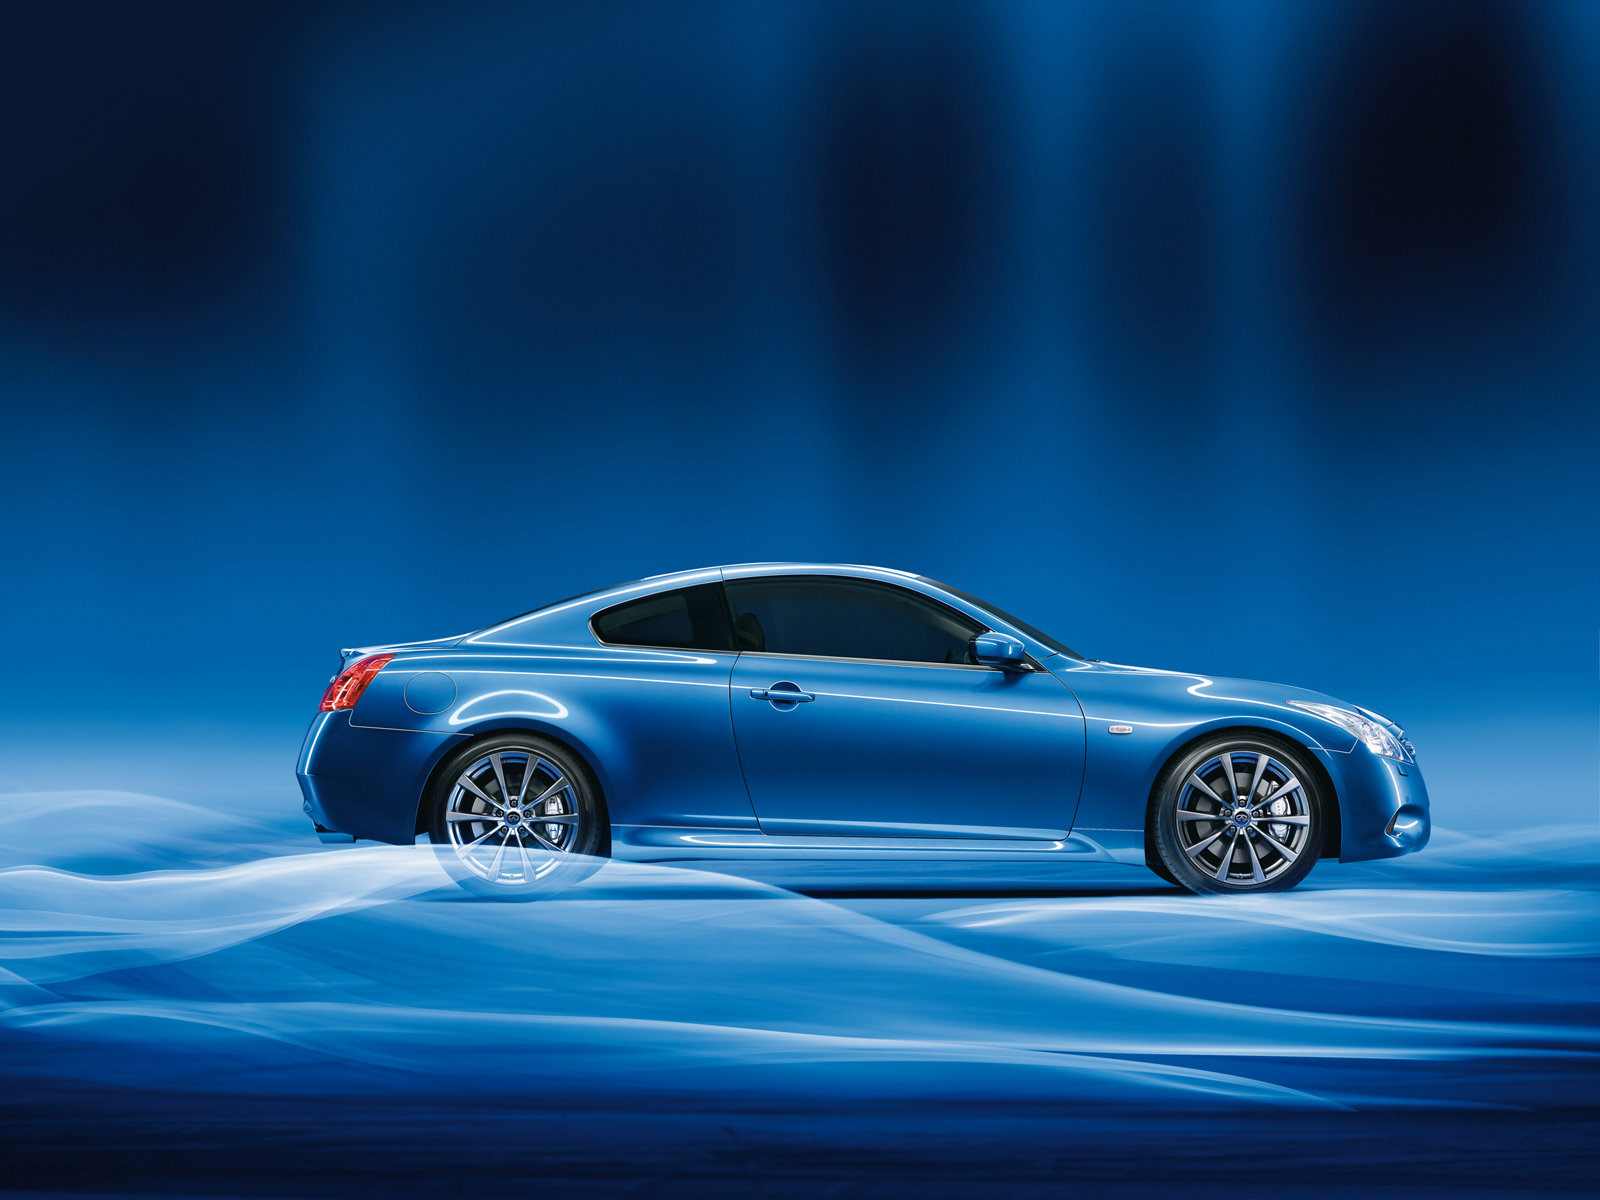 Car And Driver 10 Best >> INFINITI G37 Coupe wallpapers. Accident lawyers information.